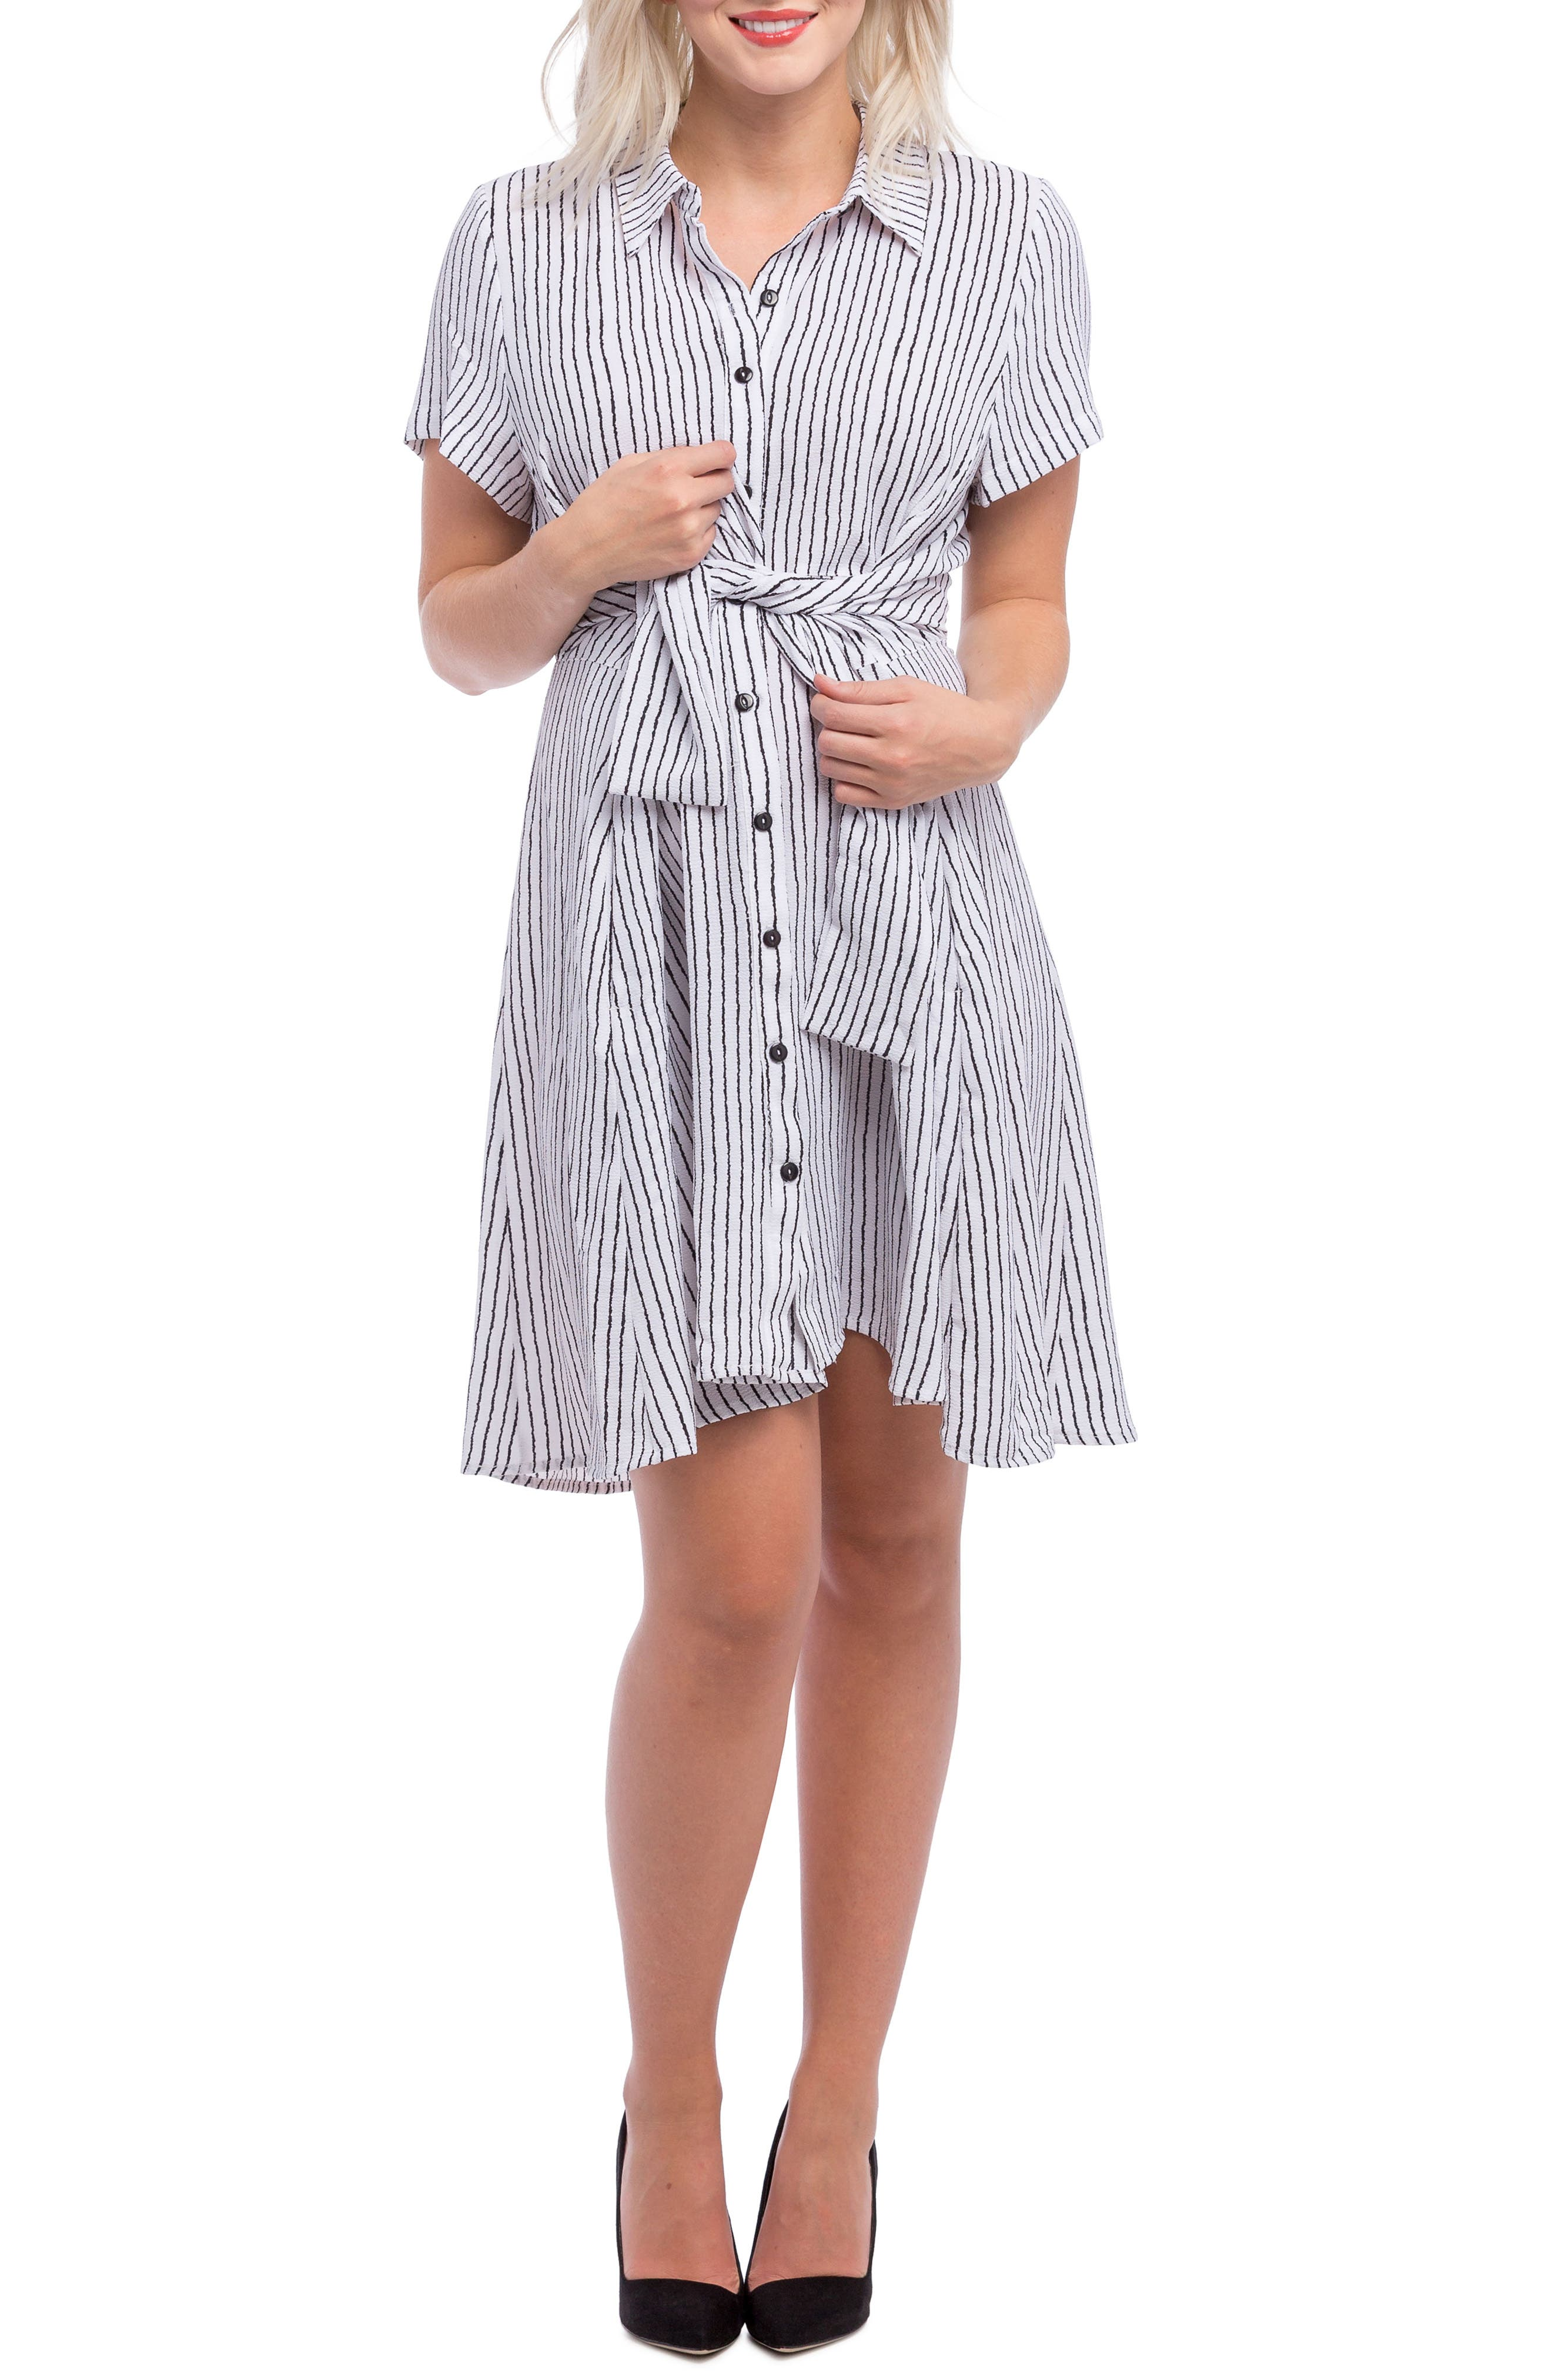 Lilac Clothing Stripe Maternity Shirt Dress